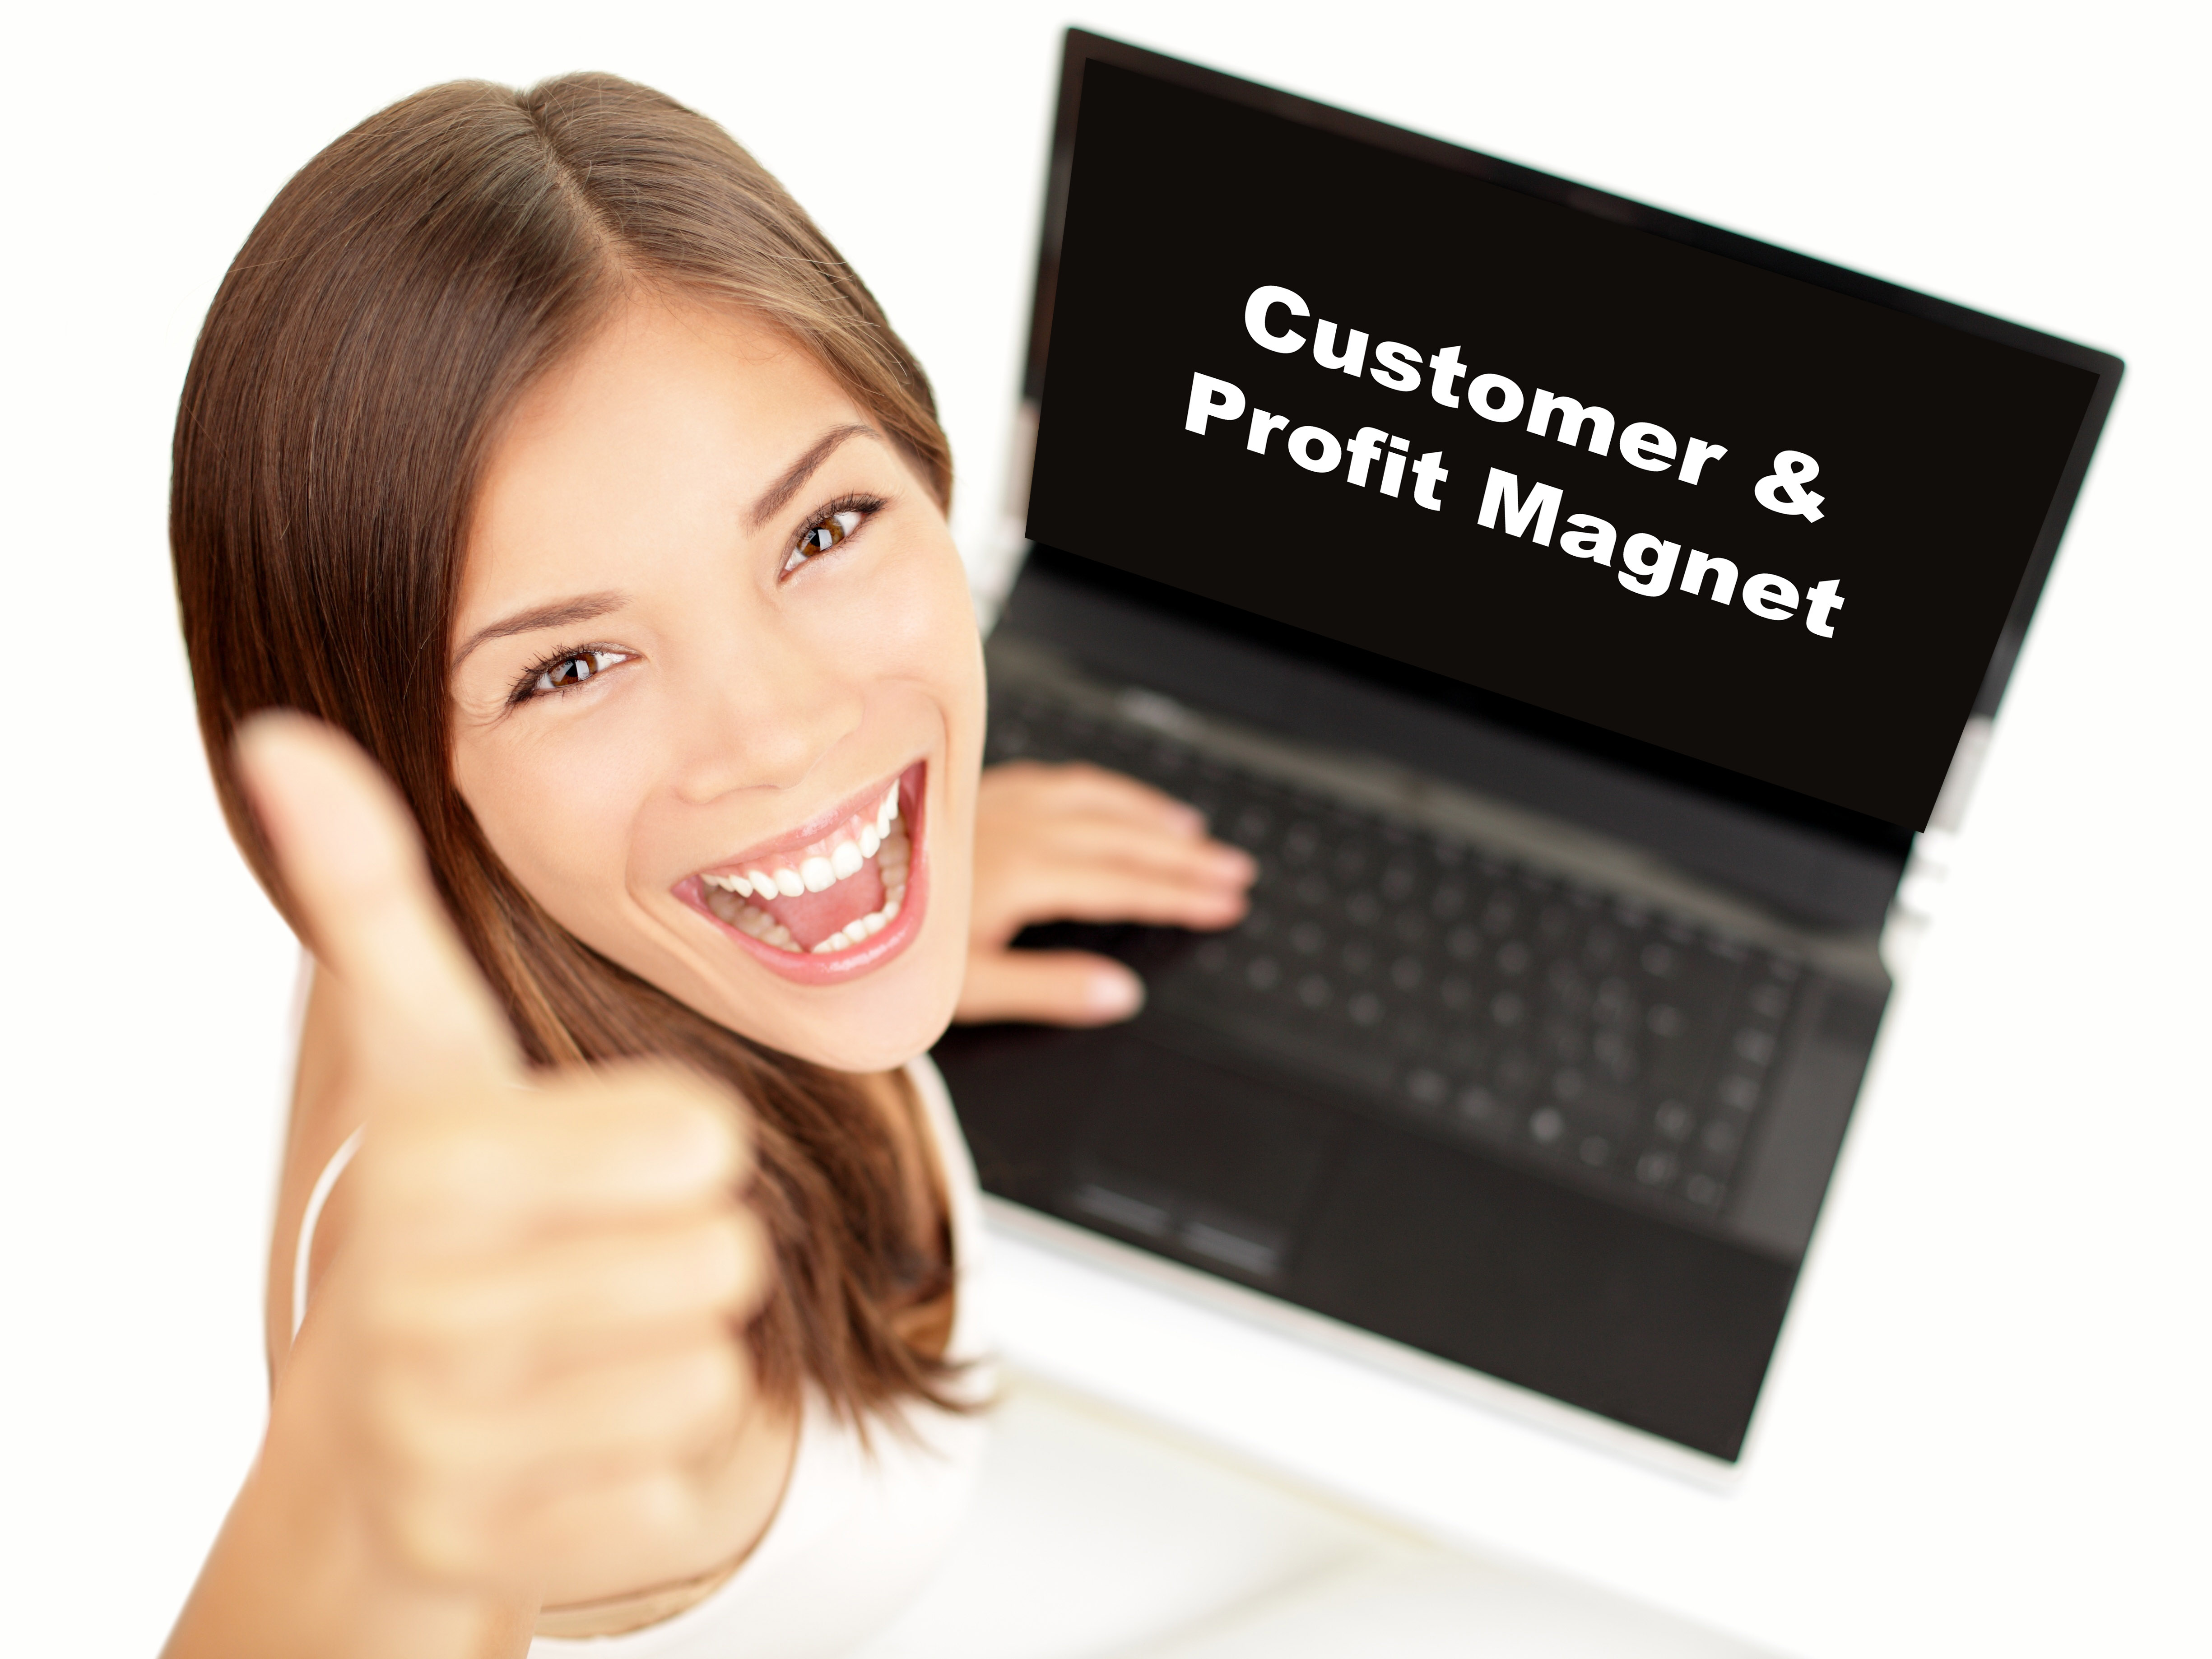 Be a customer and profit magnet